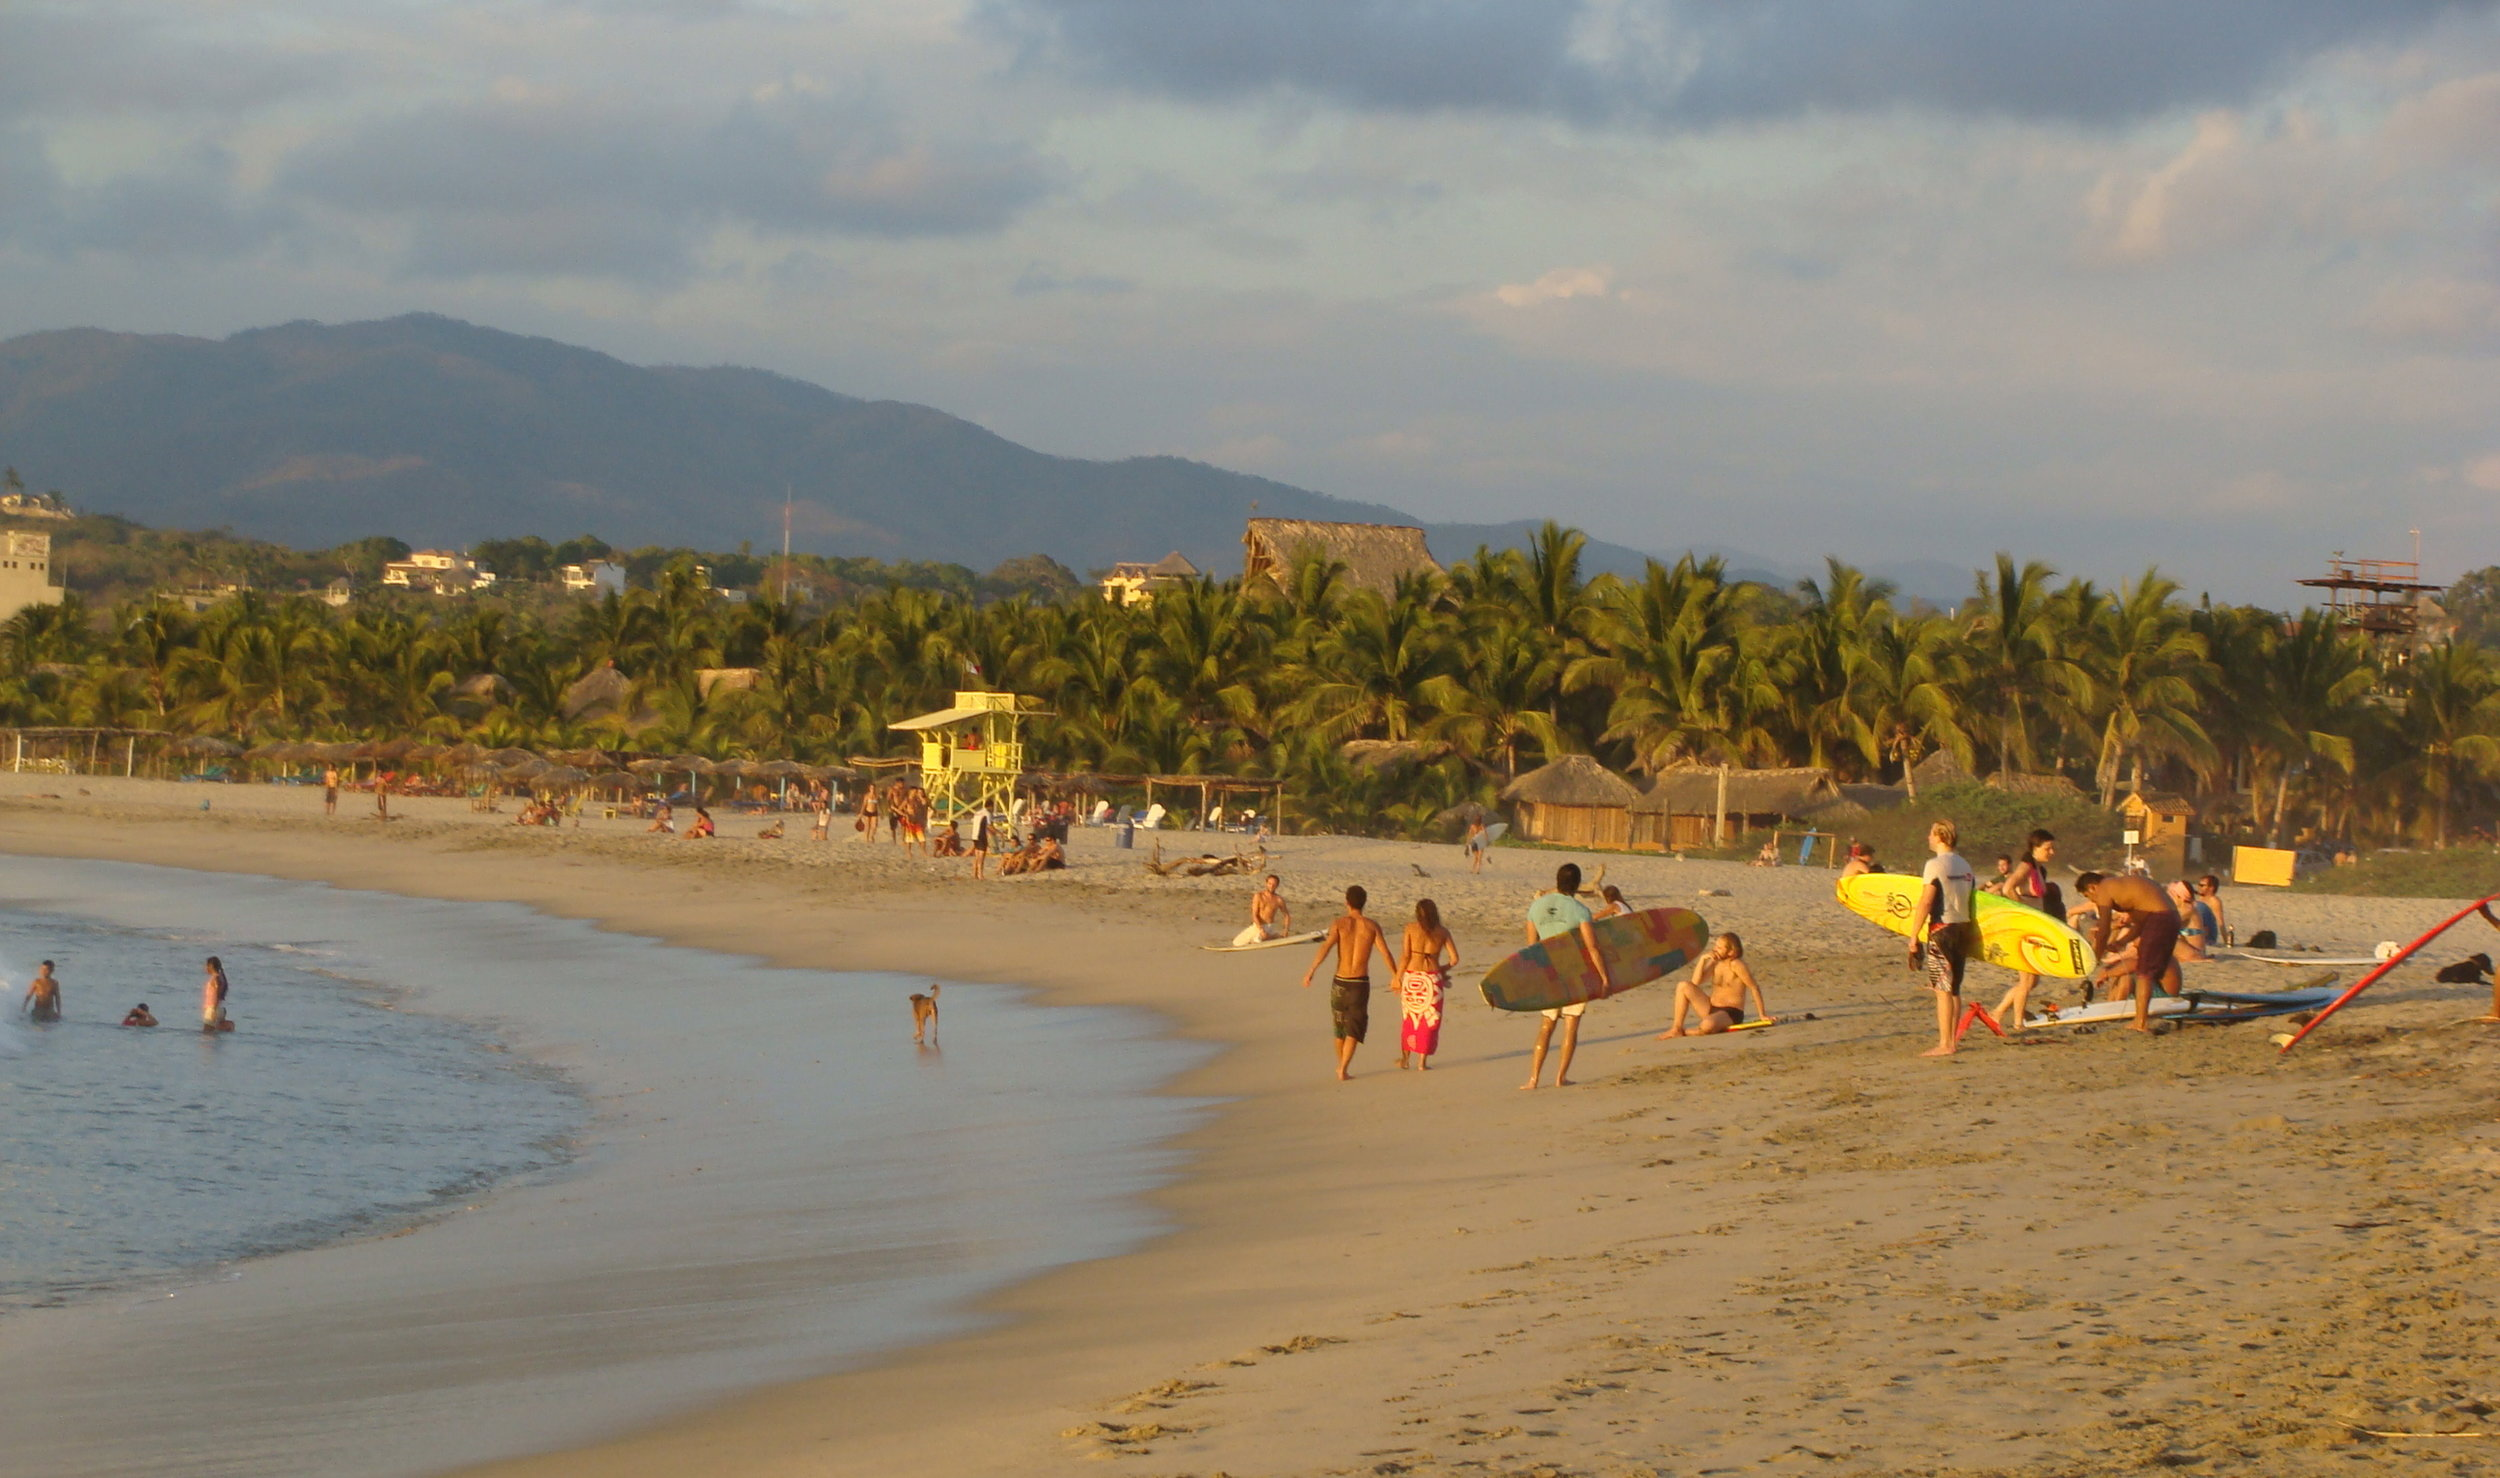 La Punta de Zicatela Beach is just steps from the accommodations included in your Surf Package